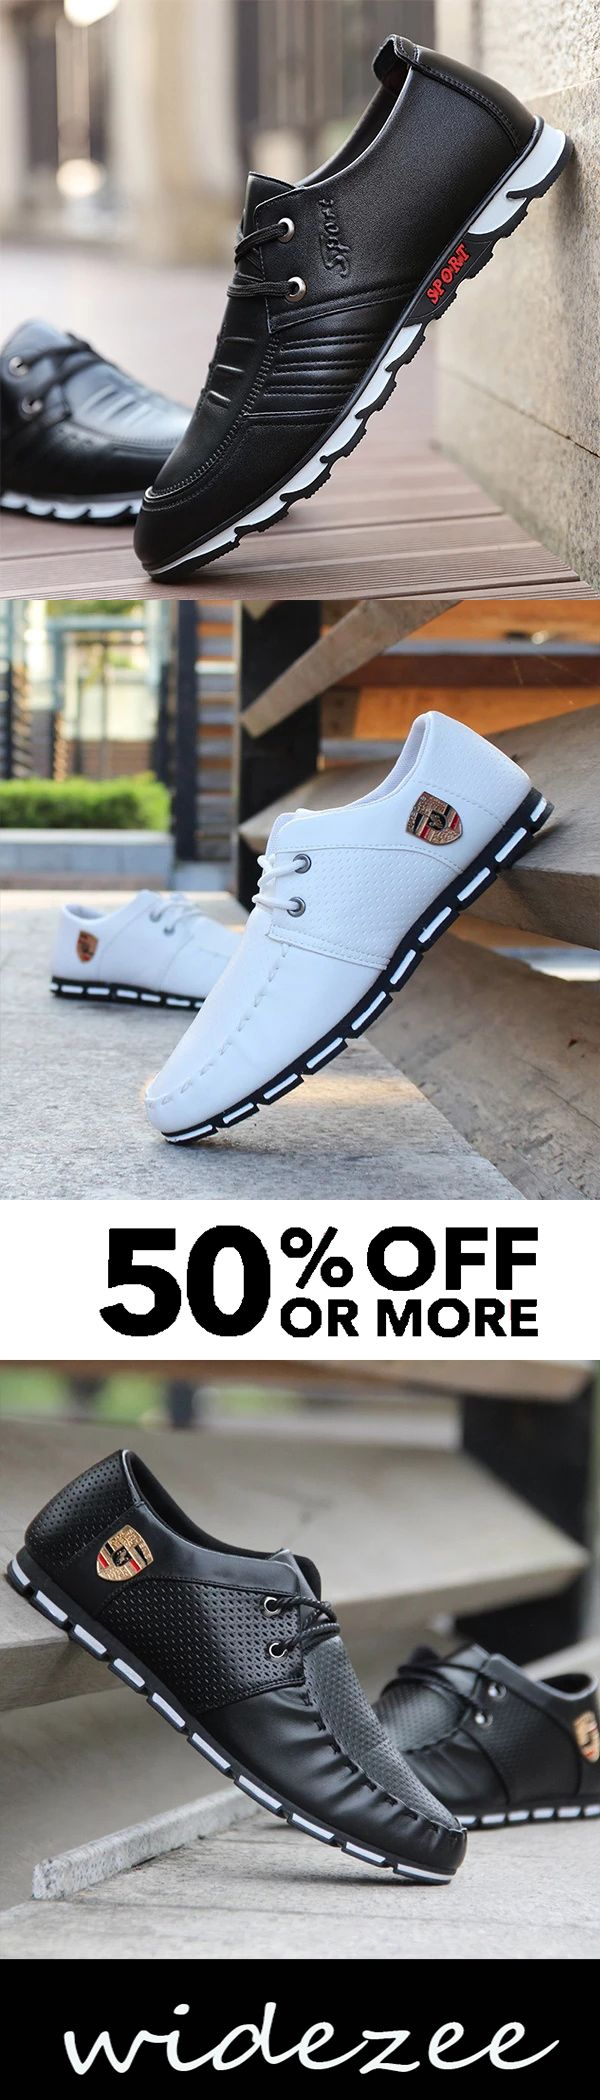 Mens Lace-up Round Toe Fashion Flat Shoes 2